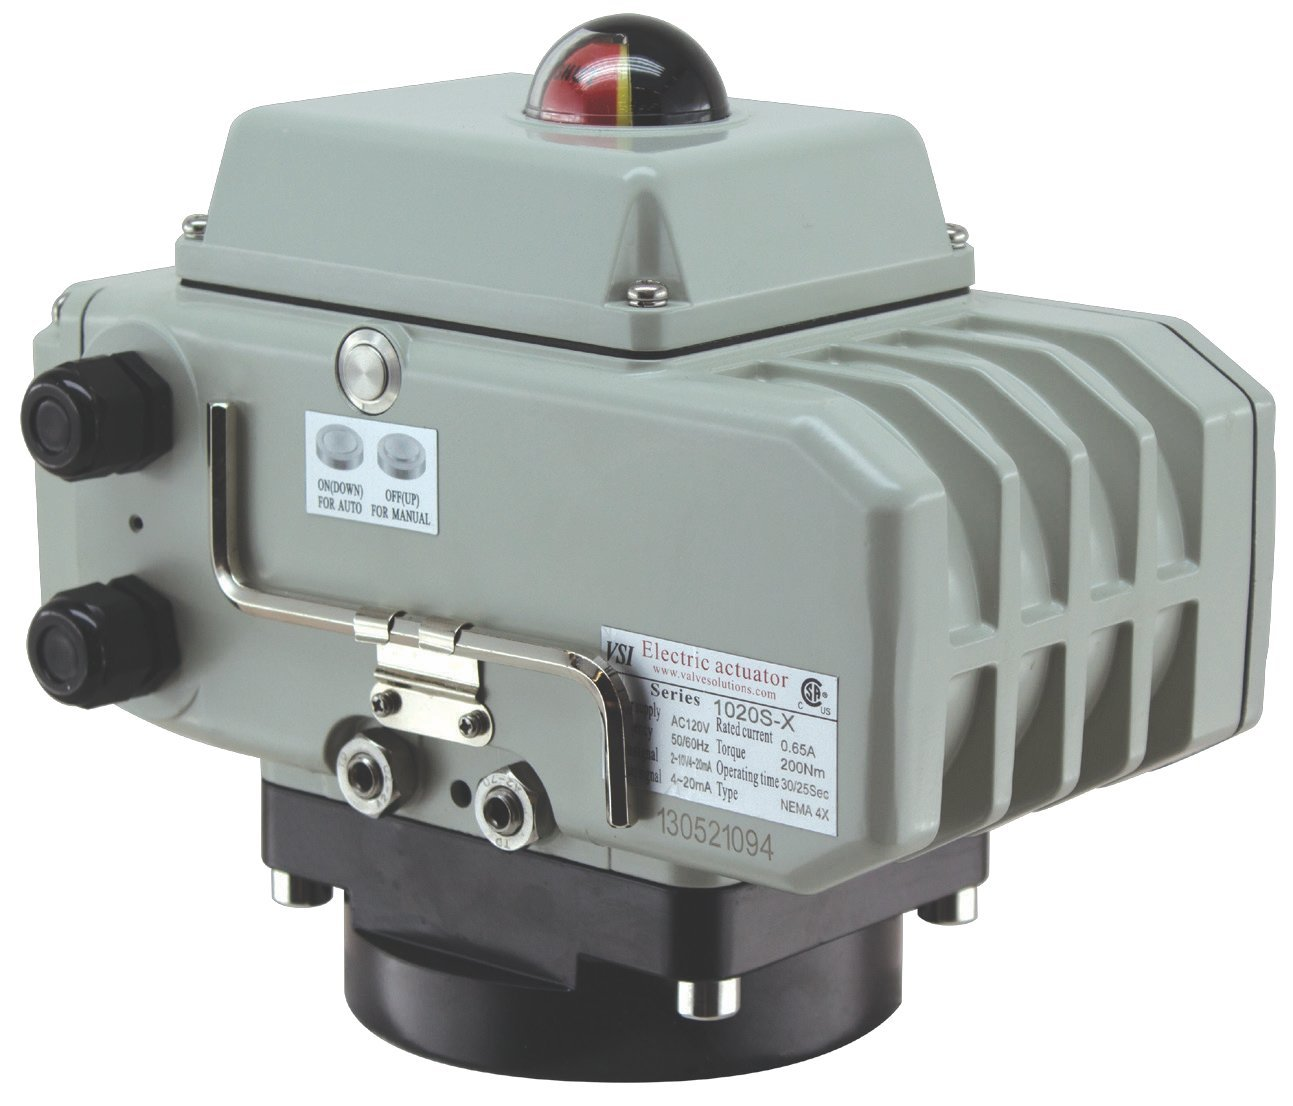 1005-X 2 Position 120Volt Electric Actuator by Series 1000-X (Image #1)